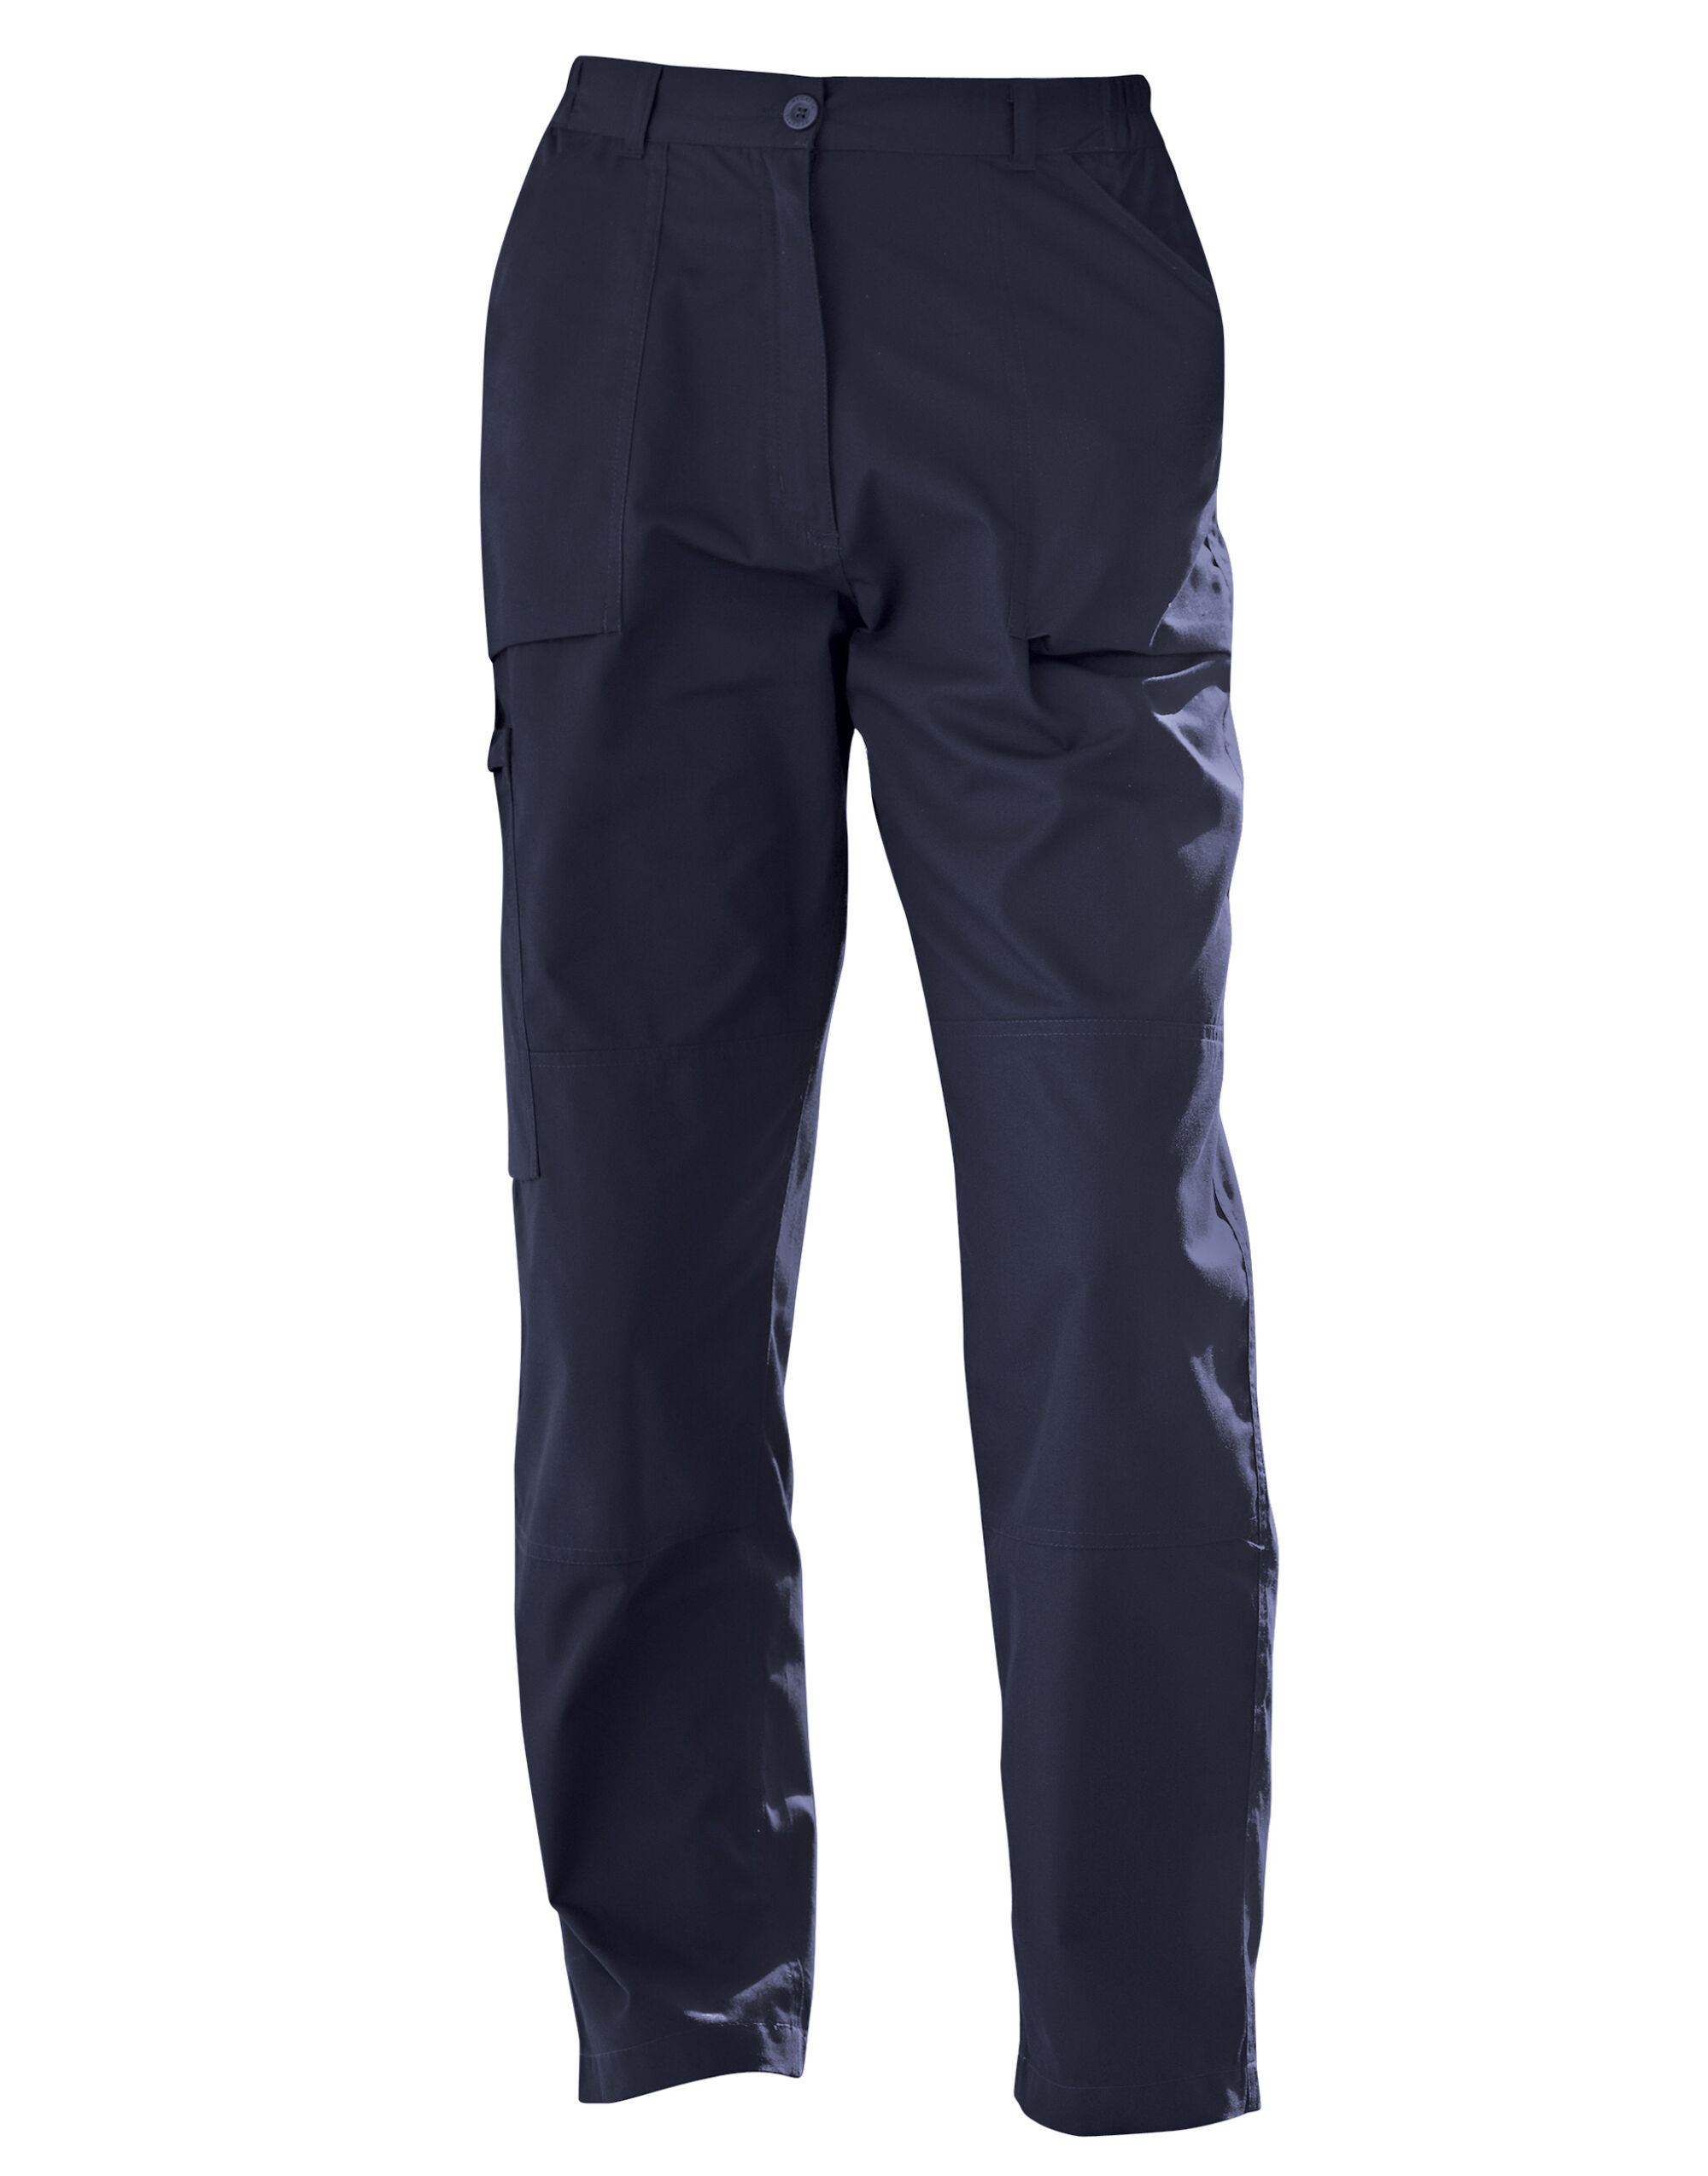 Ladies New Action Trouser (Reg)